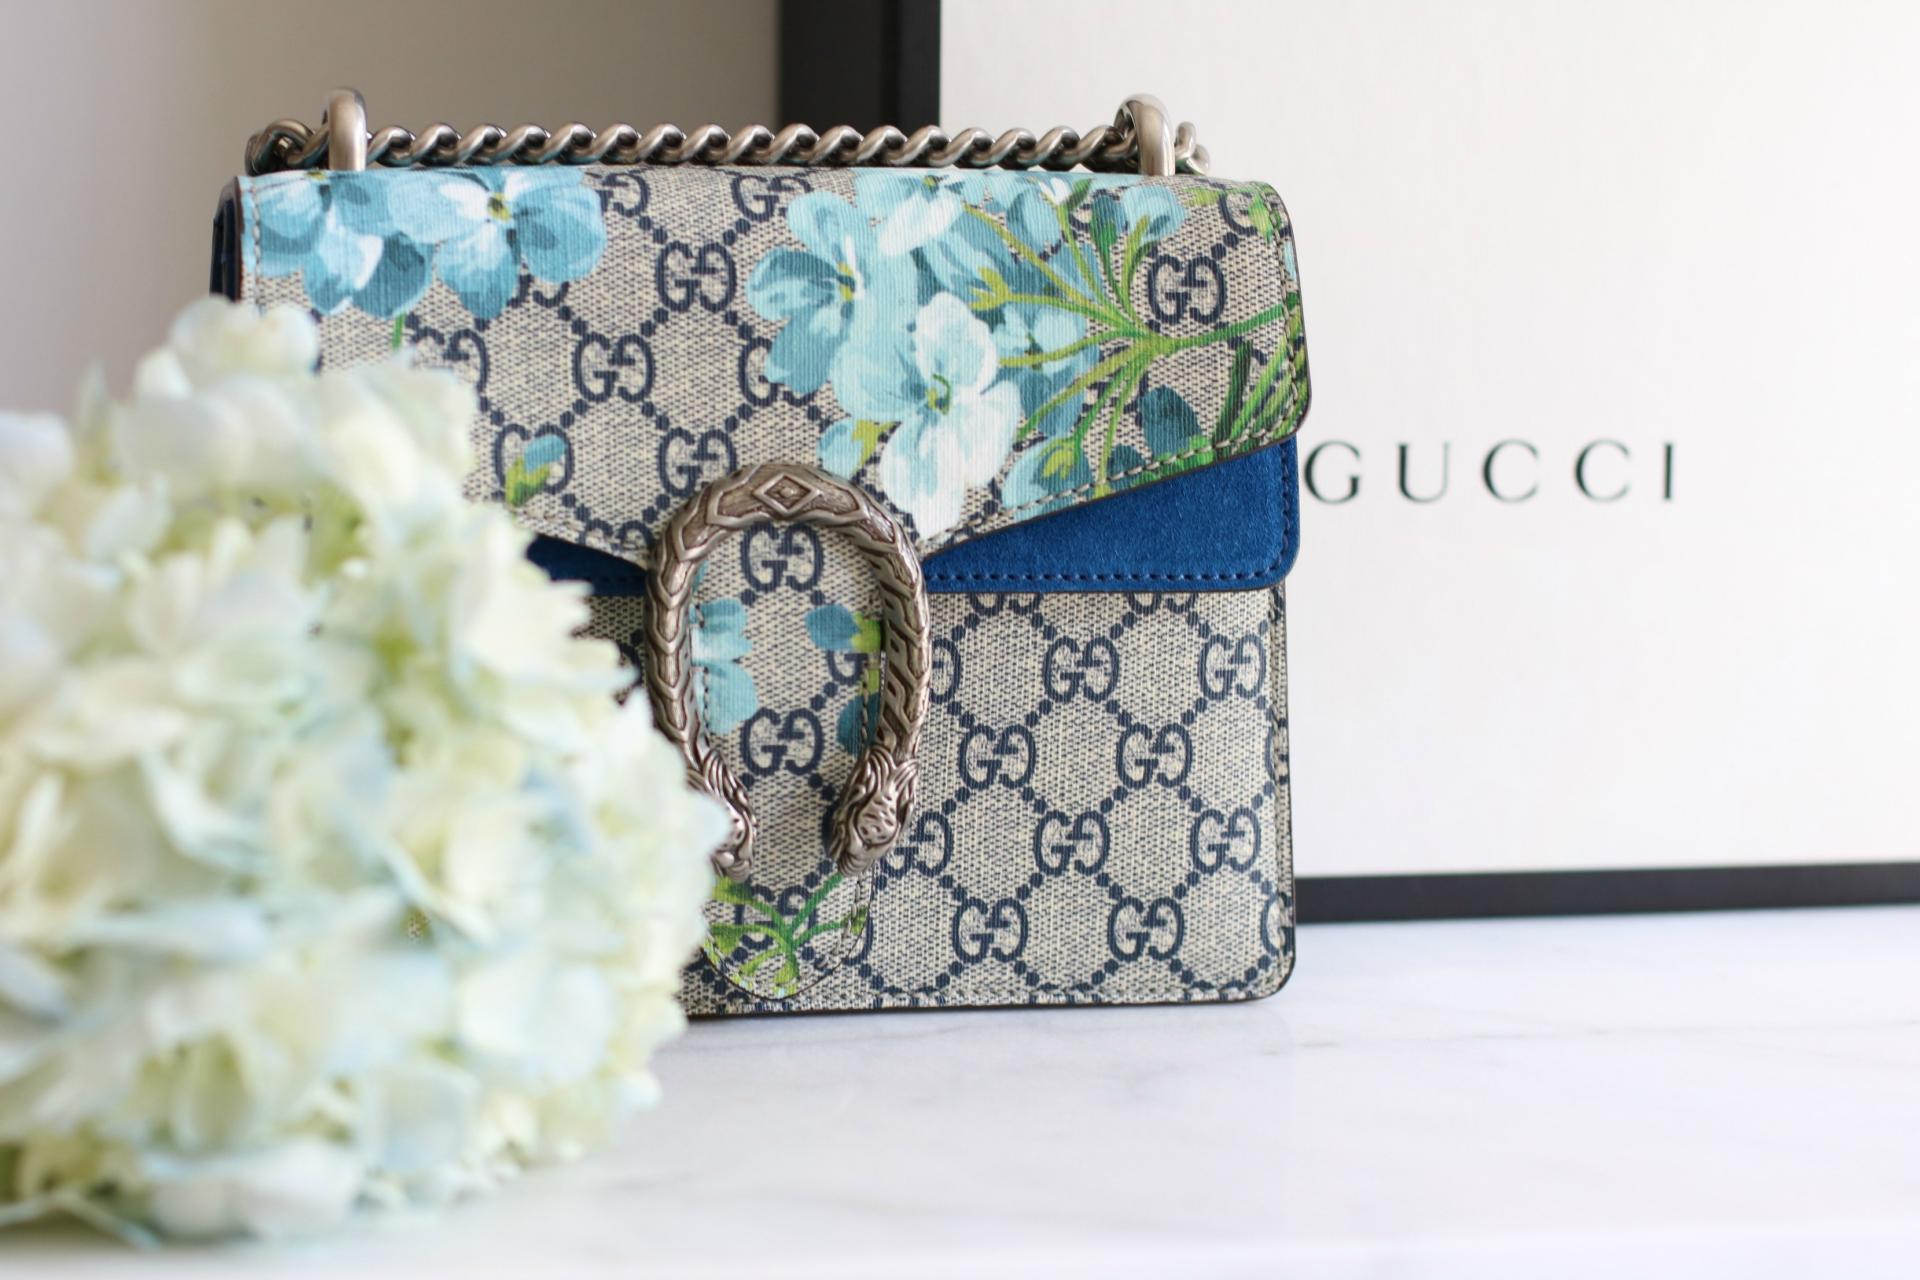 Gucci Dionysus GG Mini Blooms Bag